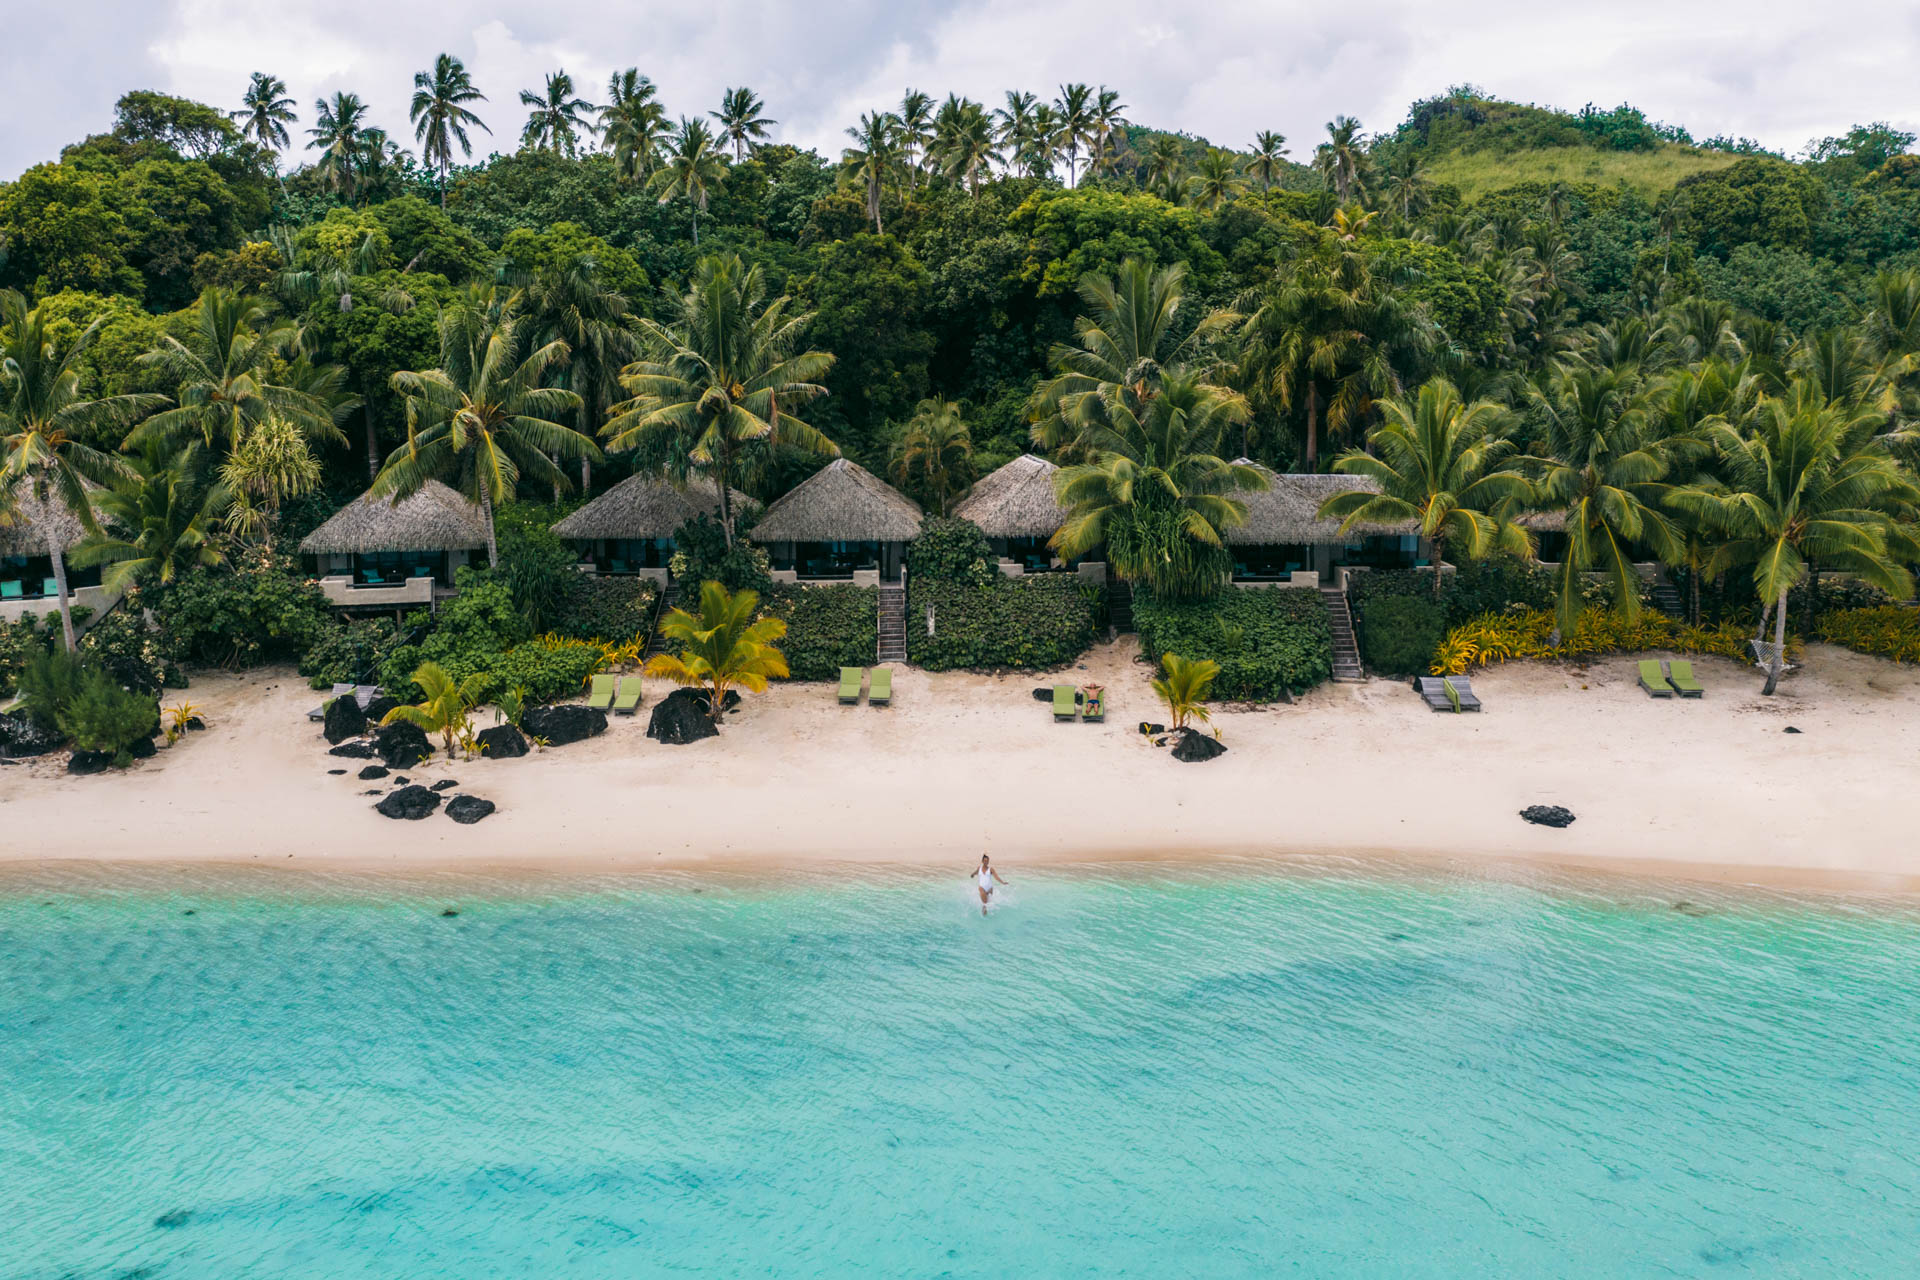 Review of Pacific Resort Aitutaki: A Secluded Getaway in the Cook Islands